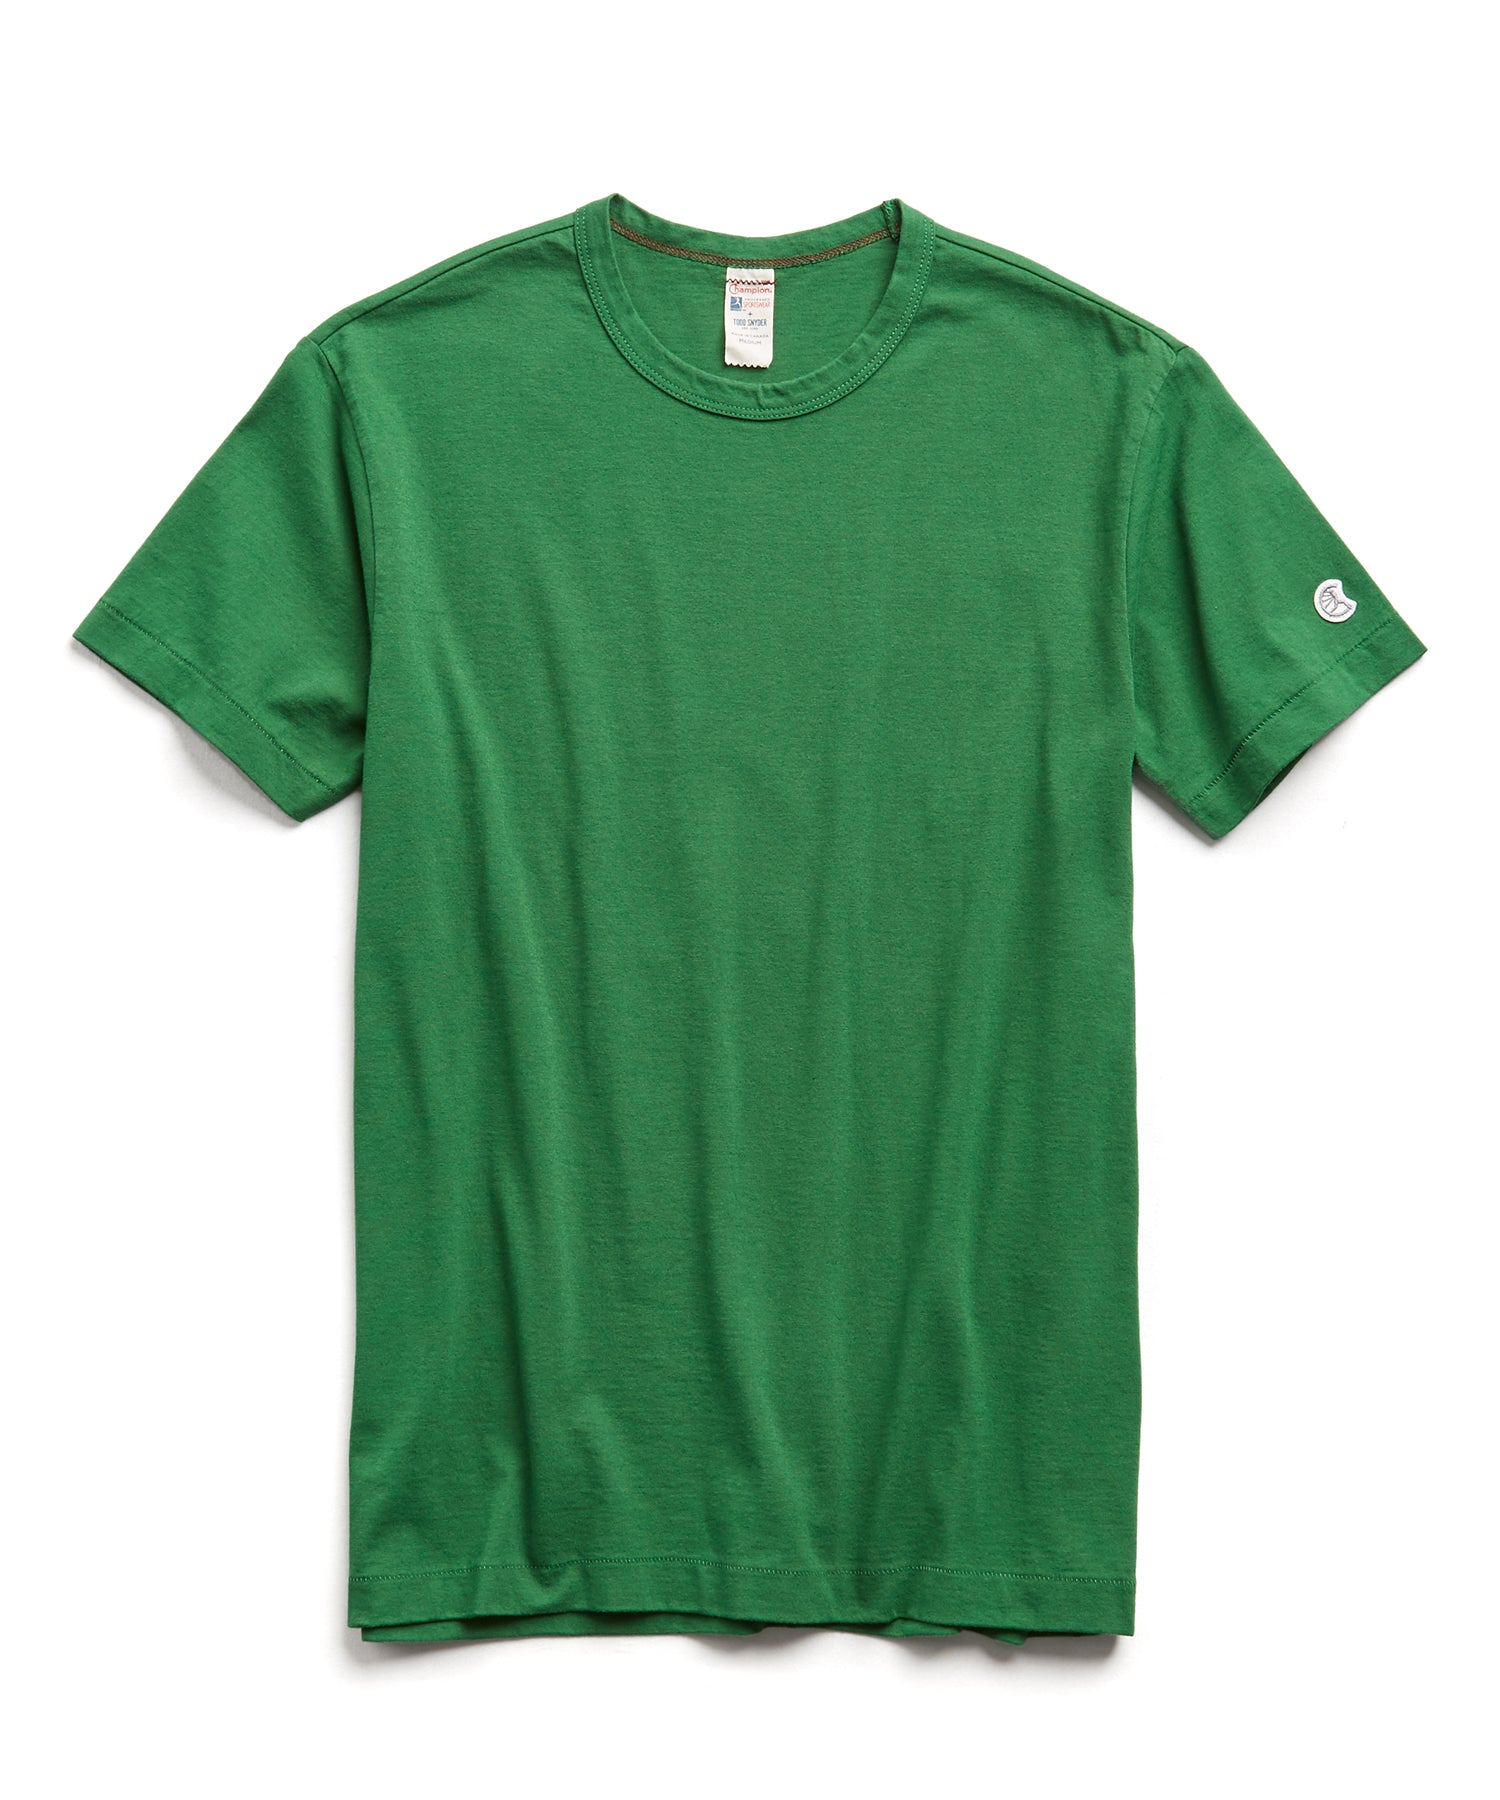 Champion Basic Jersey Tee in Cabana Green